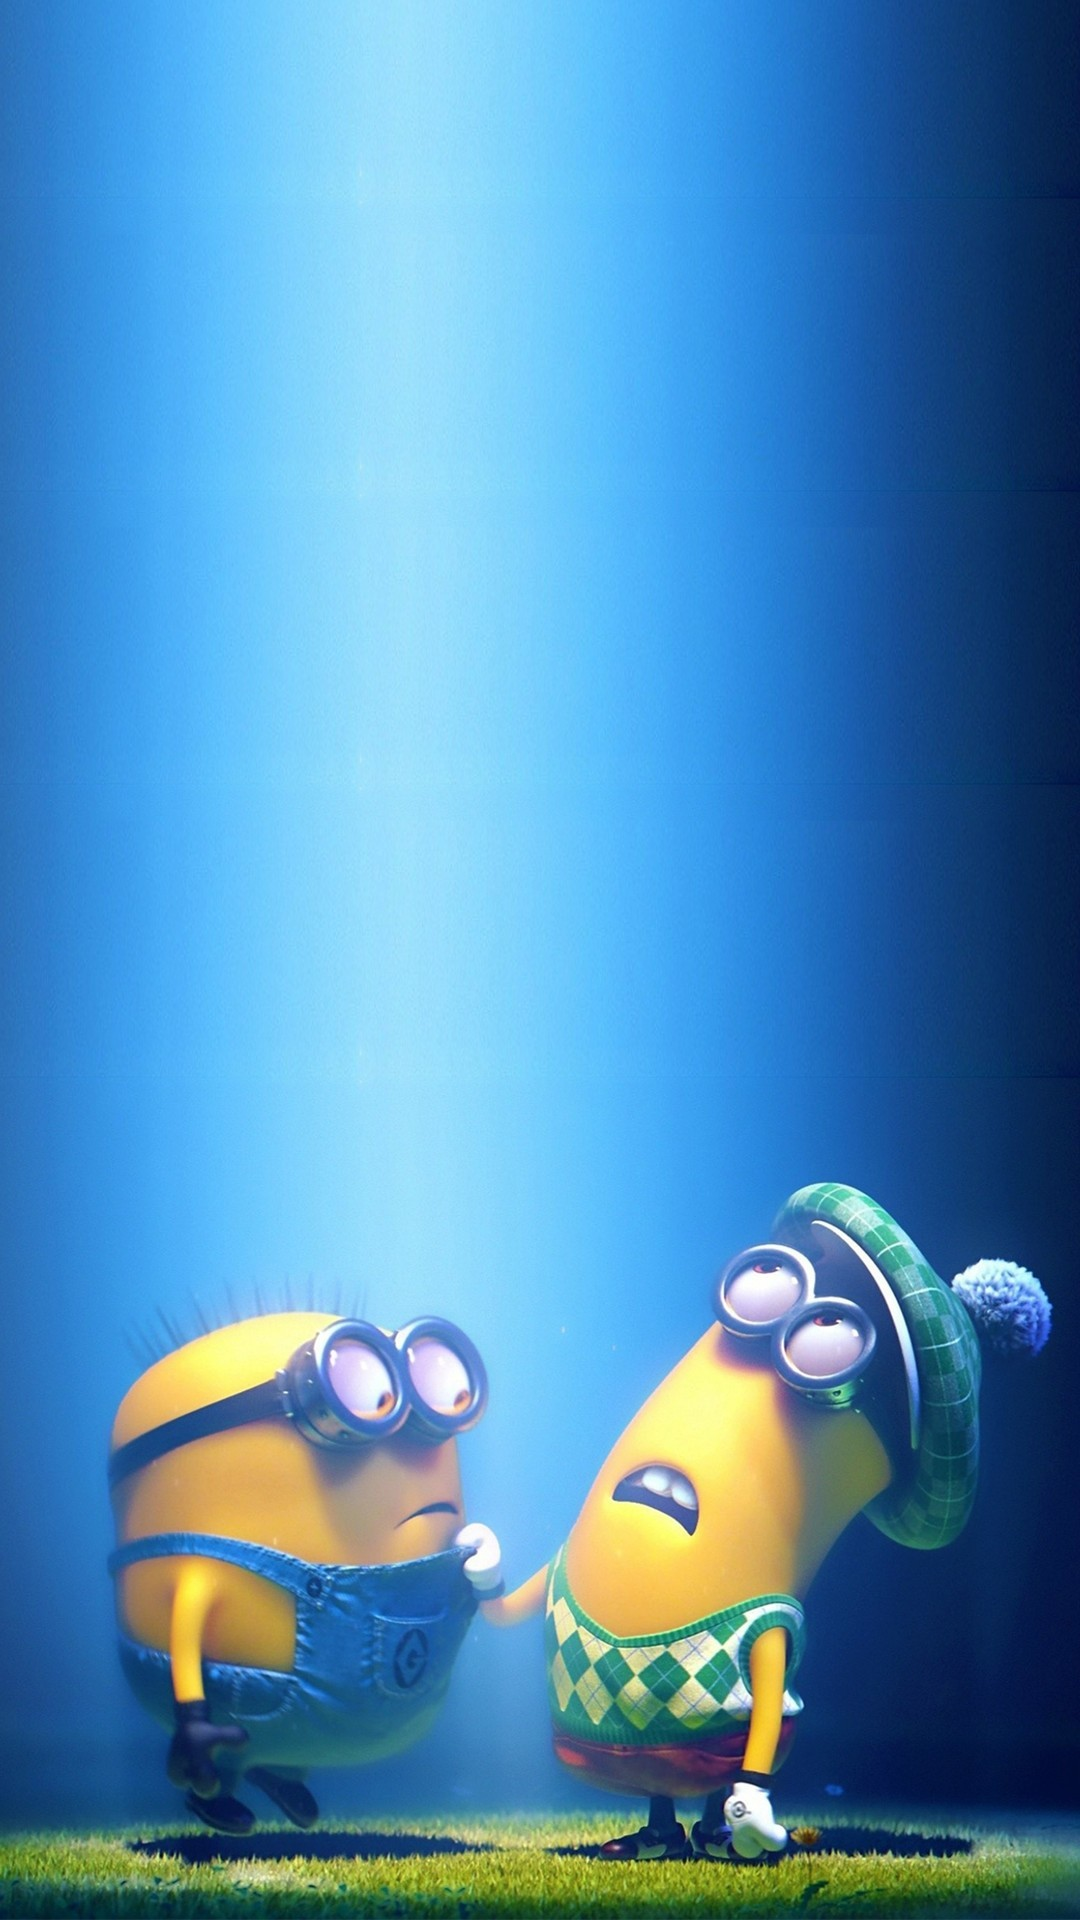 1080x1920 2014 Halloween minions iphone 6 plus wallpaper - blue sky, Despicable Me # iphone #